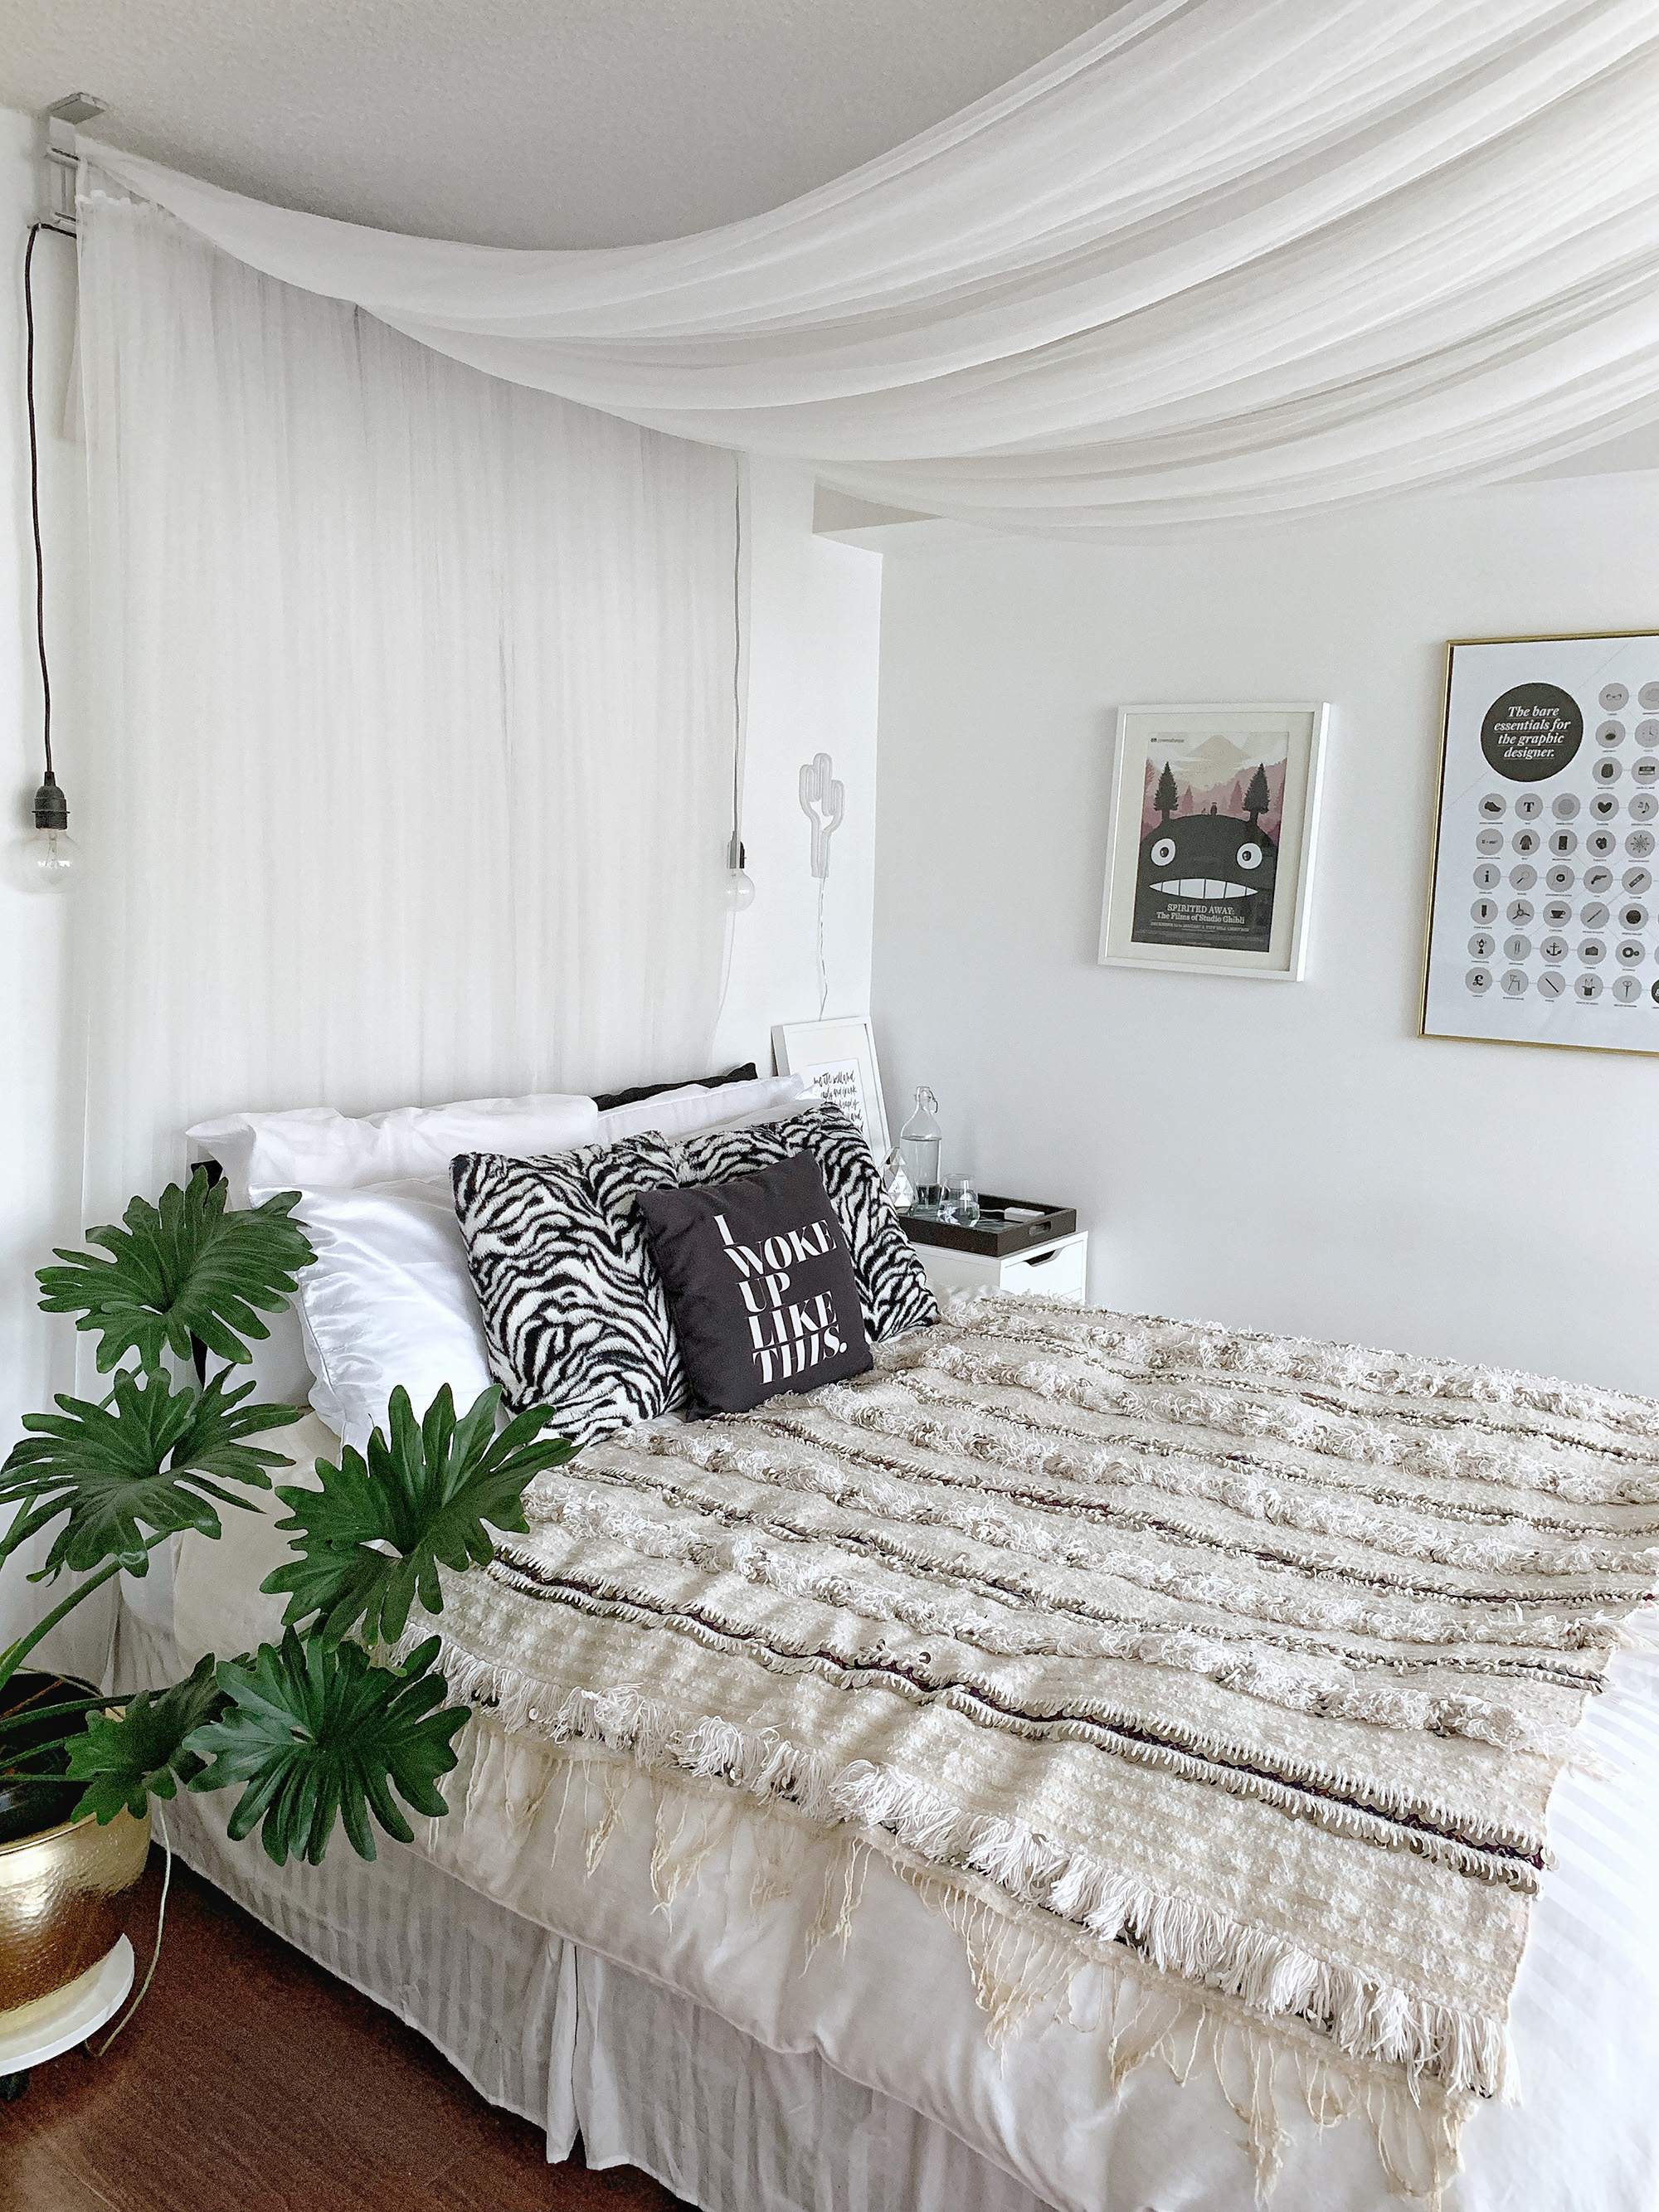 How To Transform Your Bedroom Into A Personal Oasis Teriaki Talks